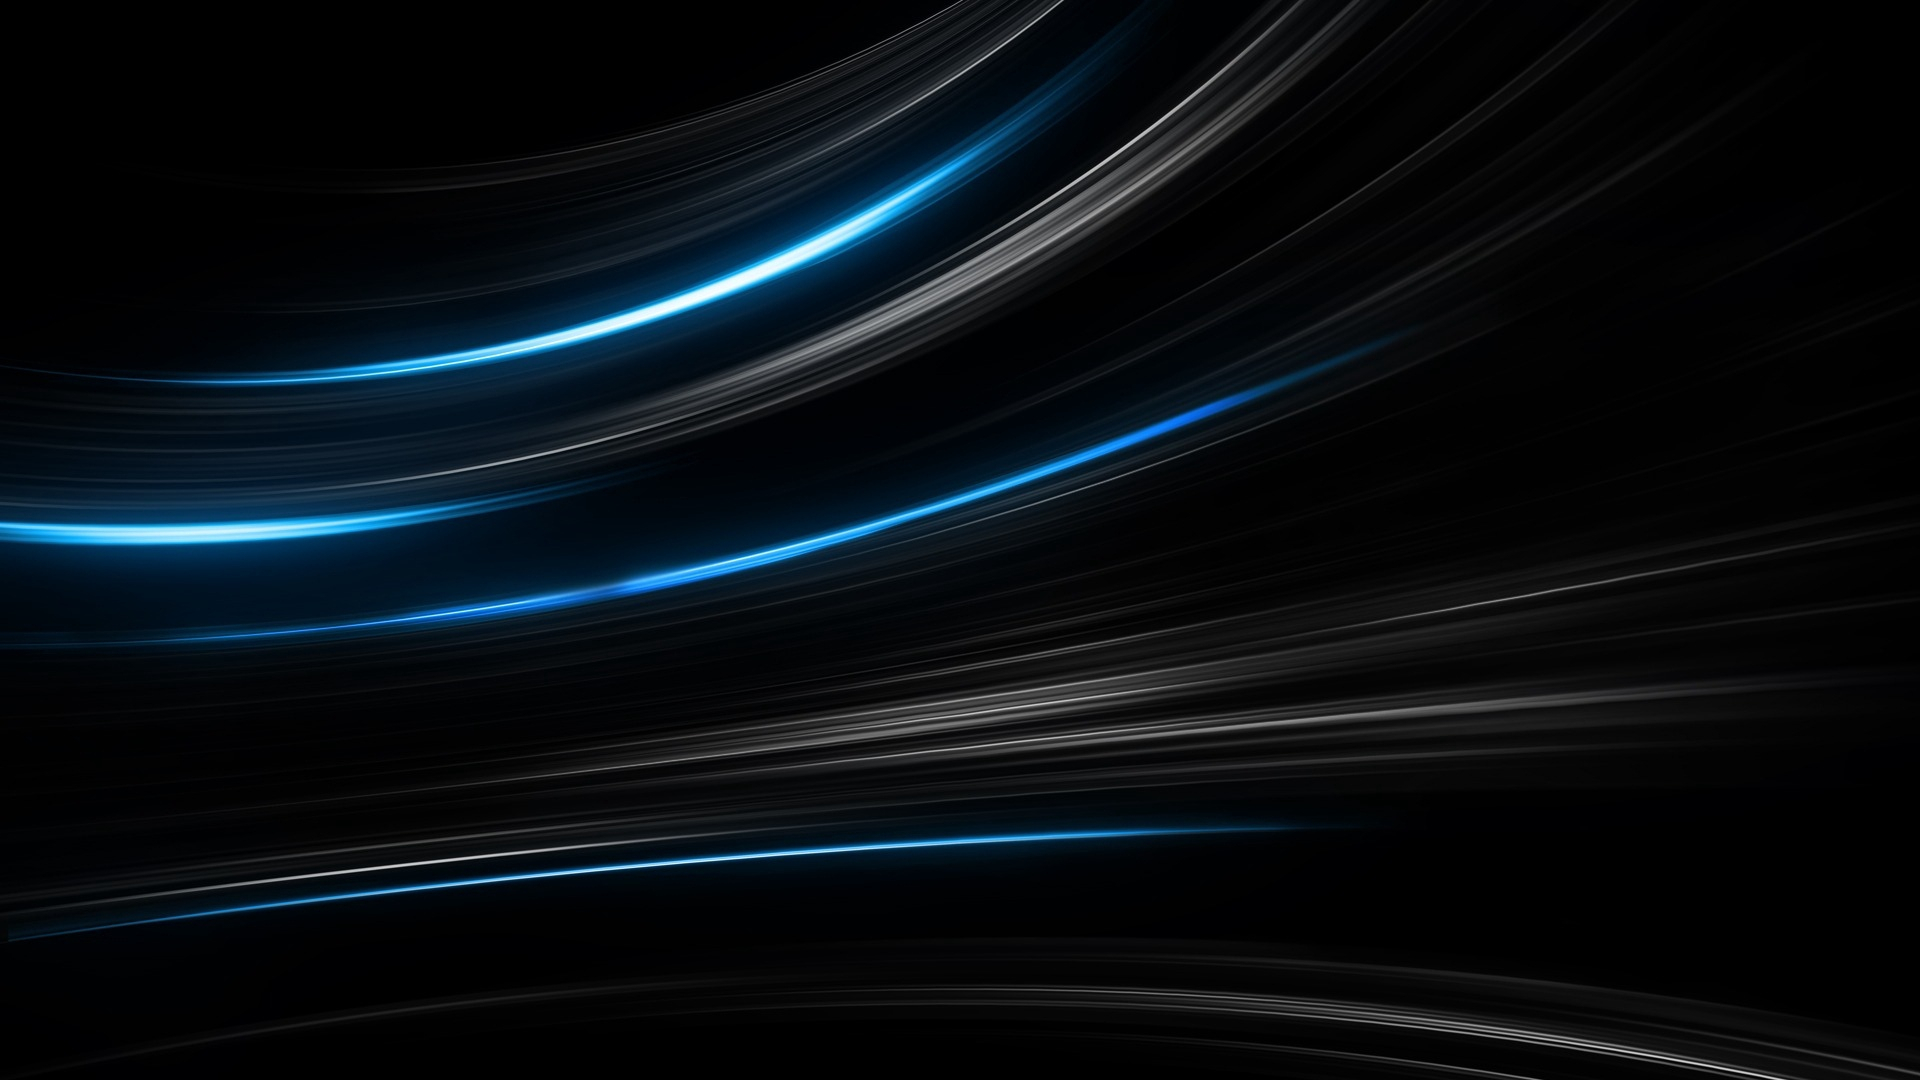 download wallpaper 1920x1080 black, blue, abstract, stripes hd